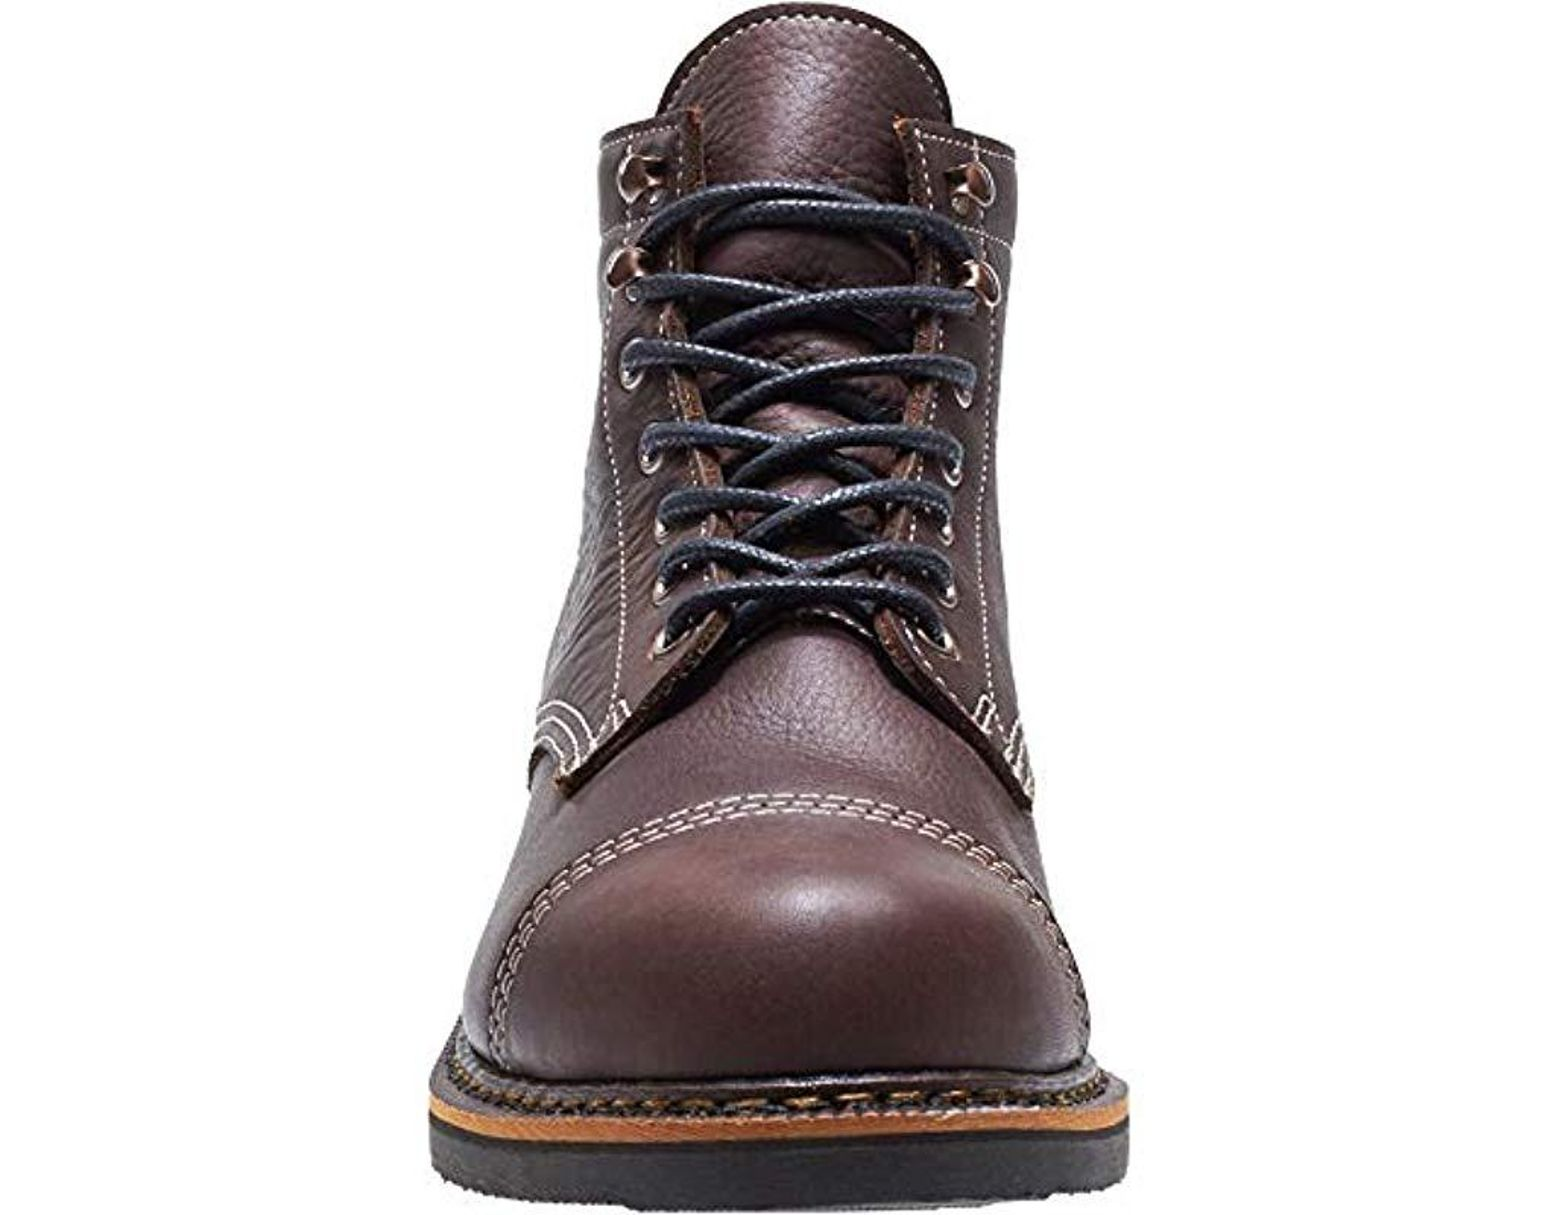 0a6d03dbb57 Men's Jenson Made In Usa 6